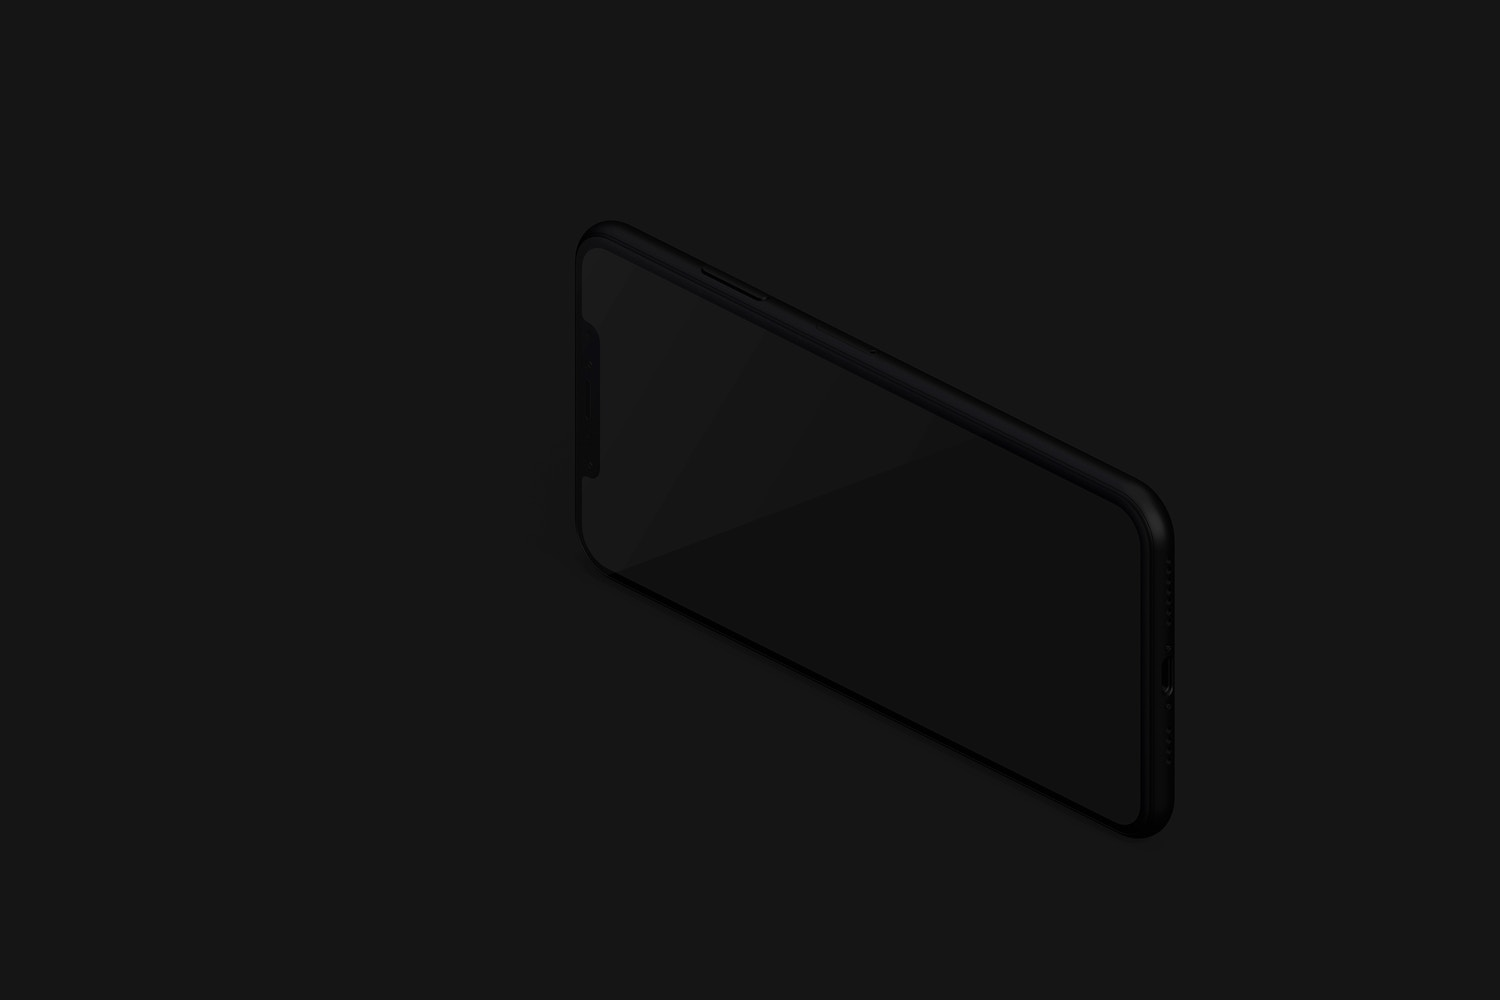 Isometric Clay iPhone XS Max Mockup, Right View 03 (3) by Original Mockups on Original Mockups